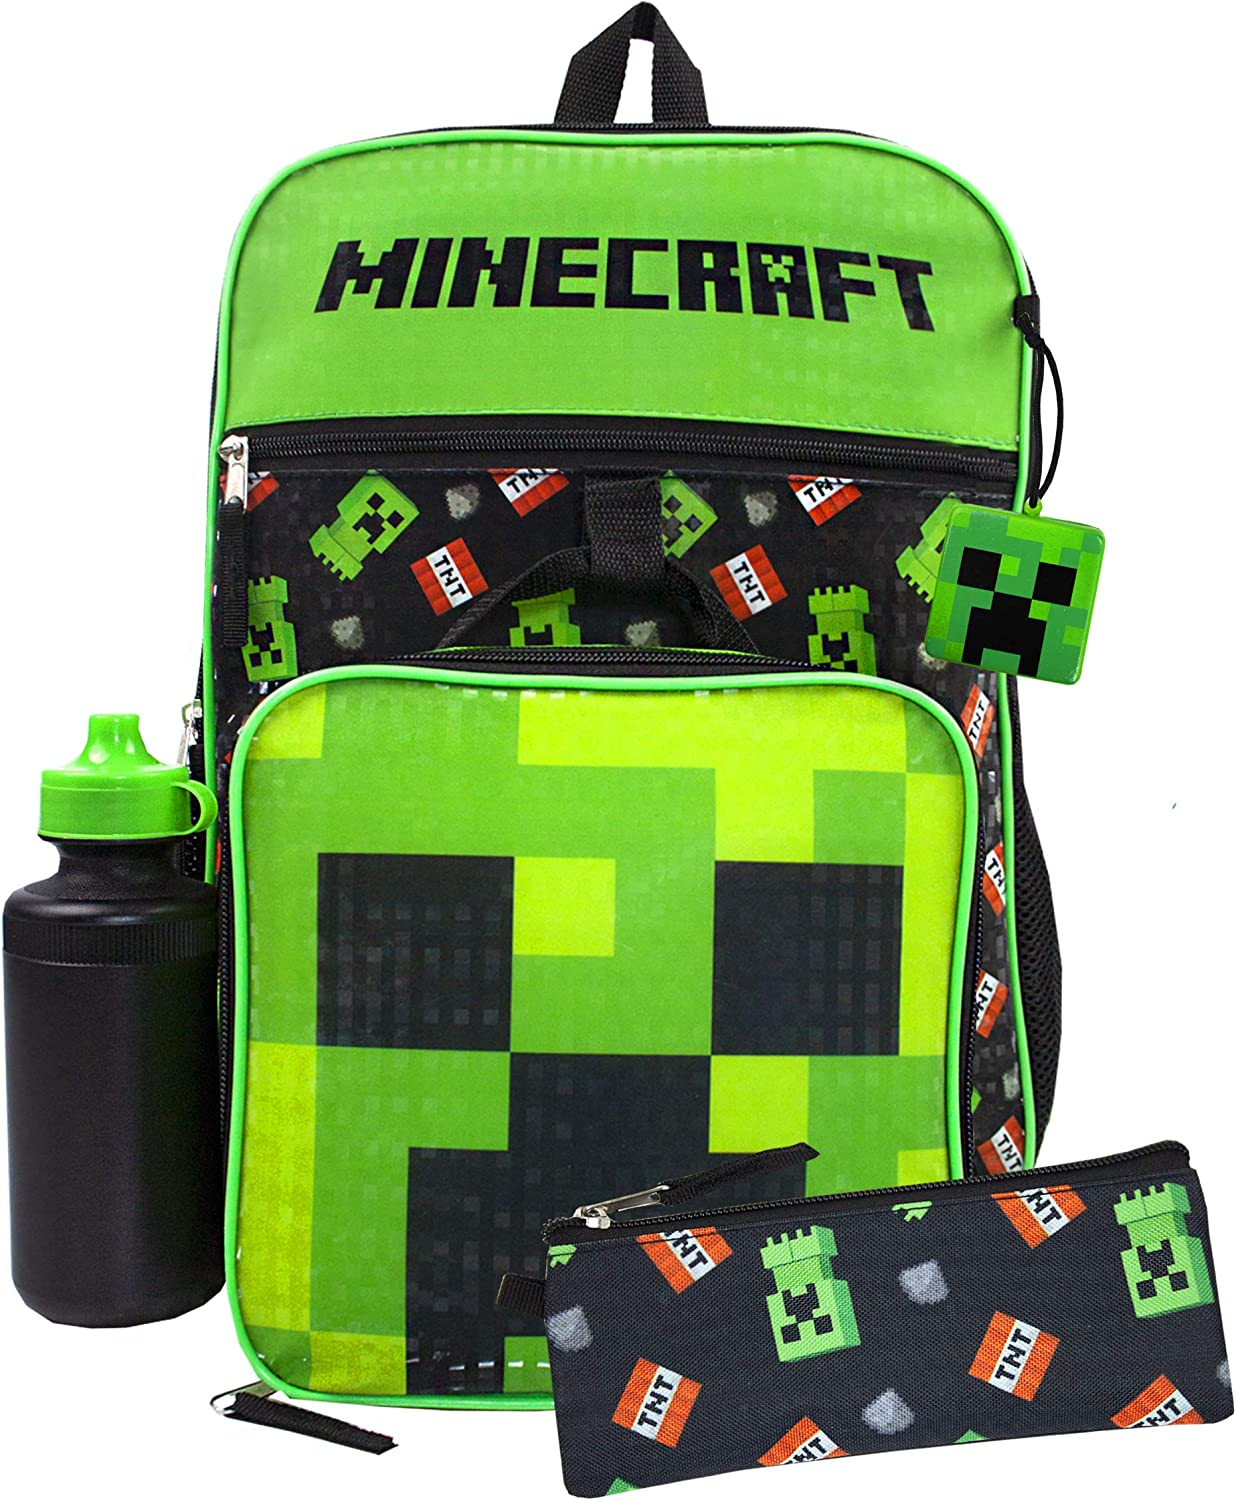 Lunch Box Squishy /& Backpack Minecraft Creeper TNT 5 Piece Backpack Set Pencil Case Bottle